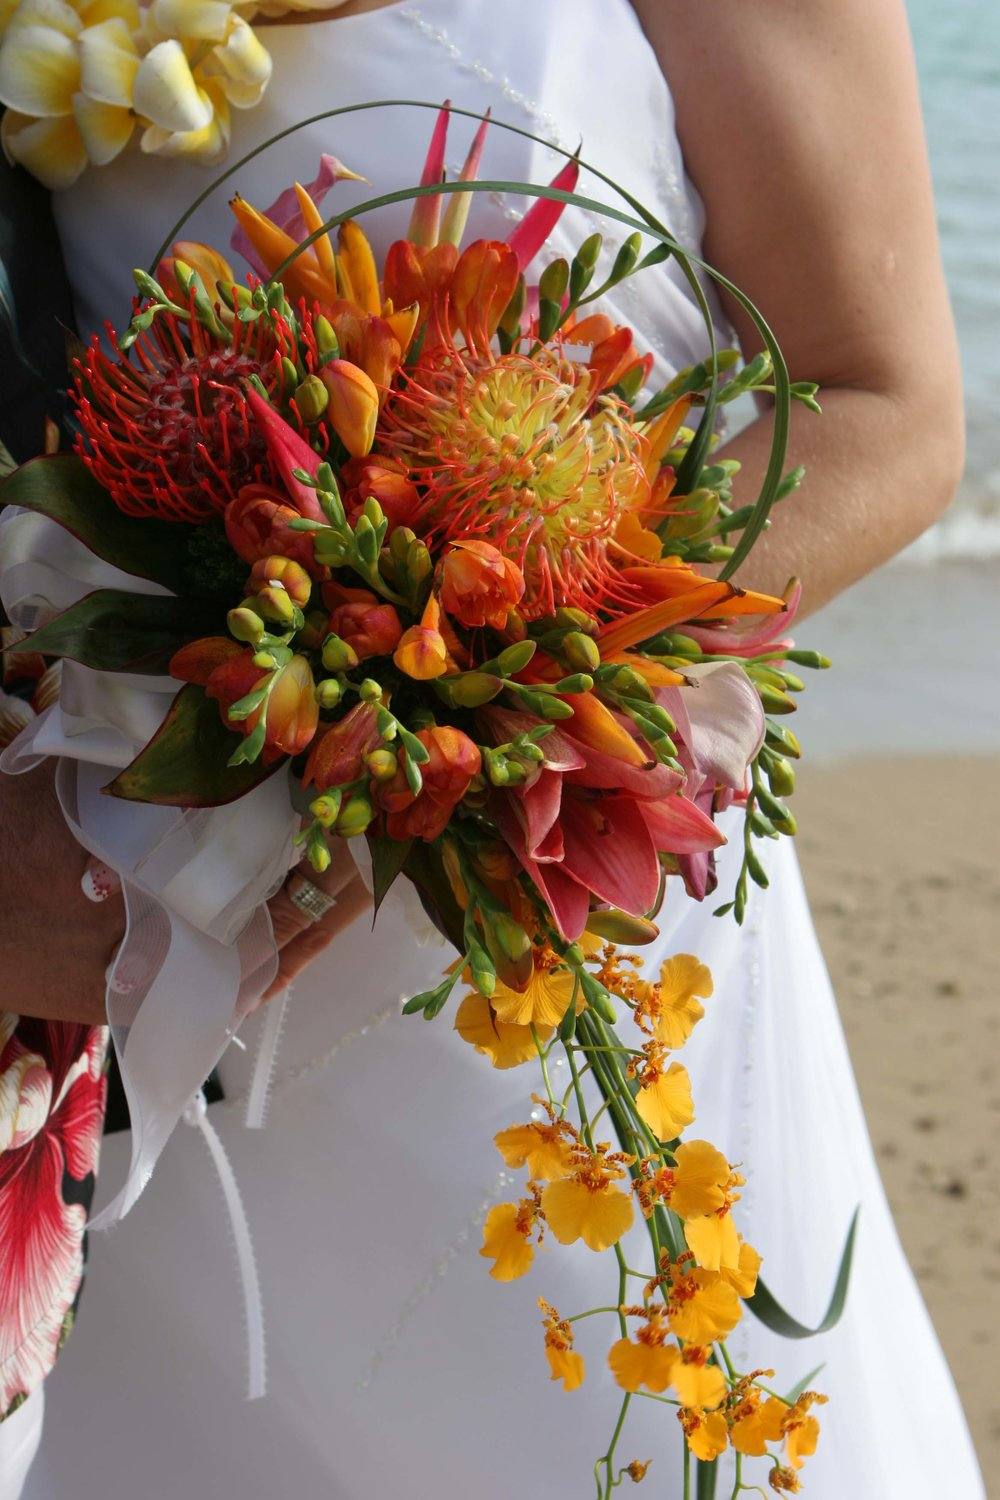 Aloha Forever Hawaii Weddings Flowers Page Aloha Forever Hawaii